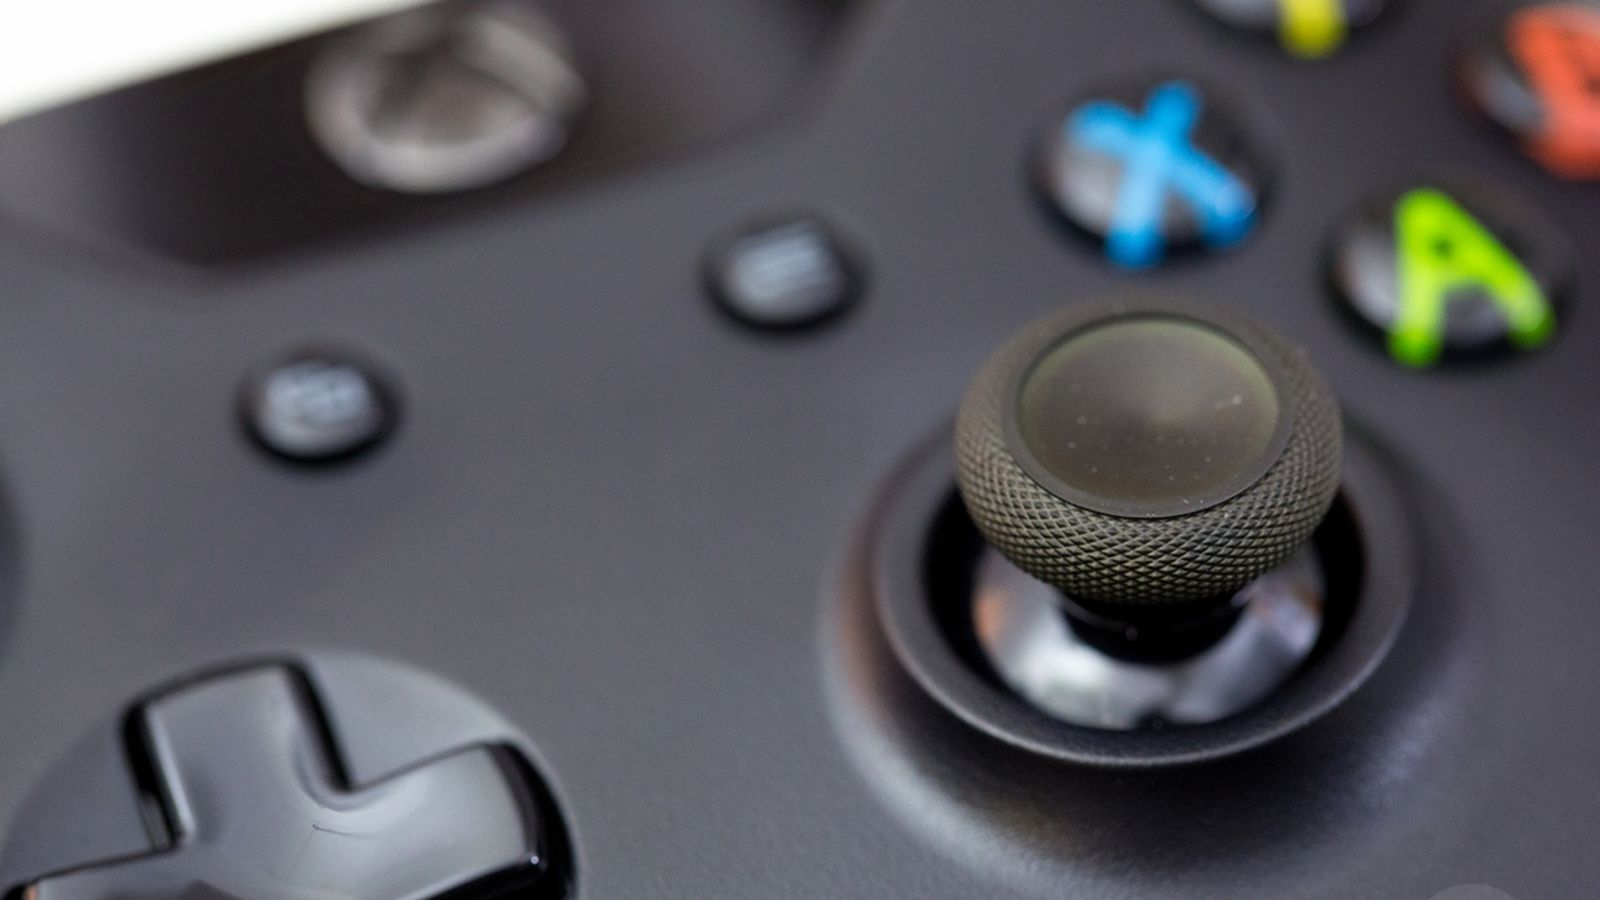 Psychologist says rush to pathologize 'video game addiction' is dangerous